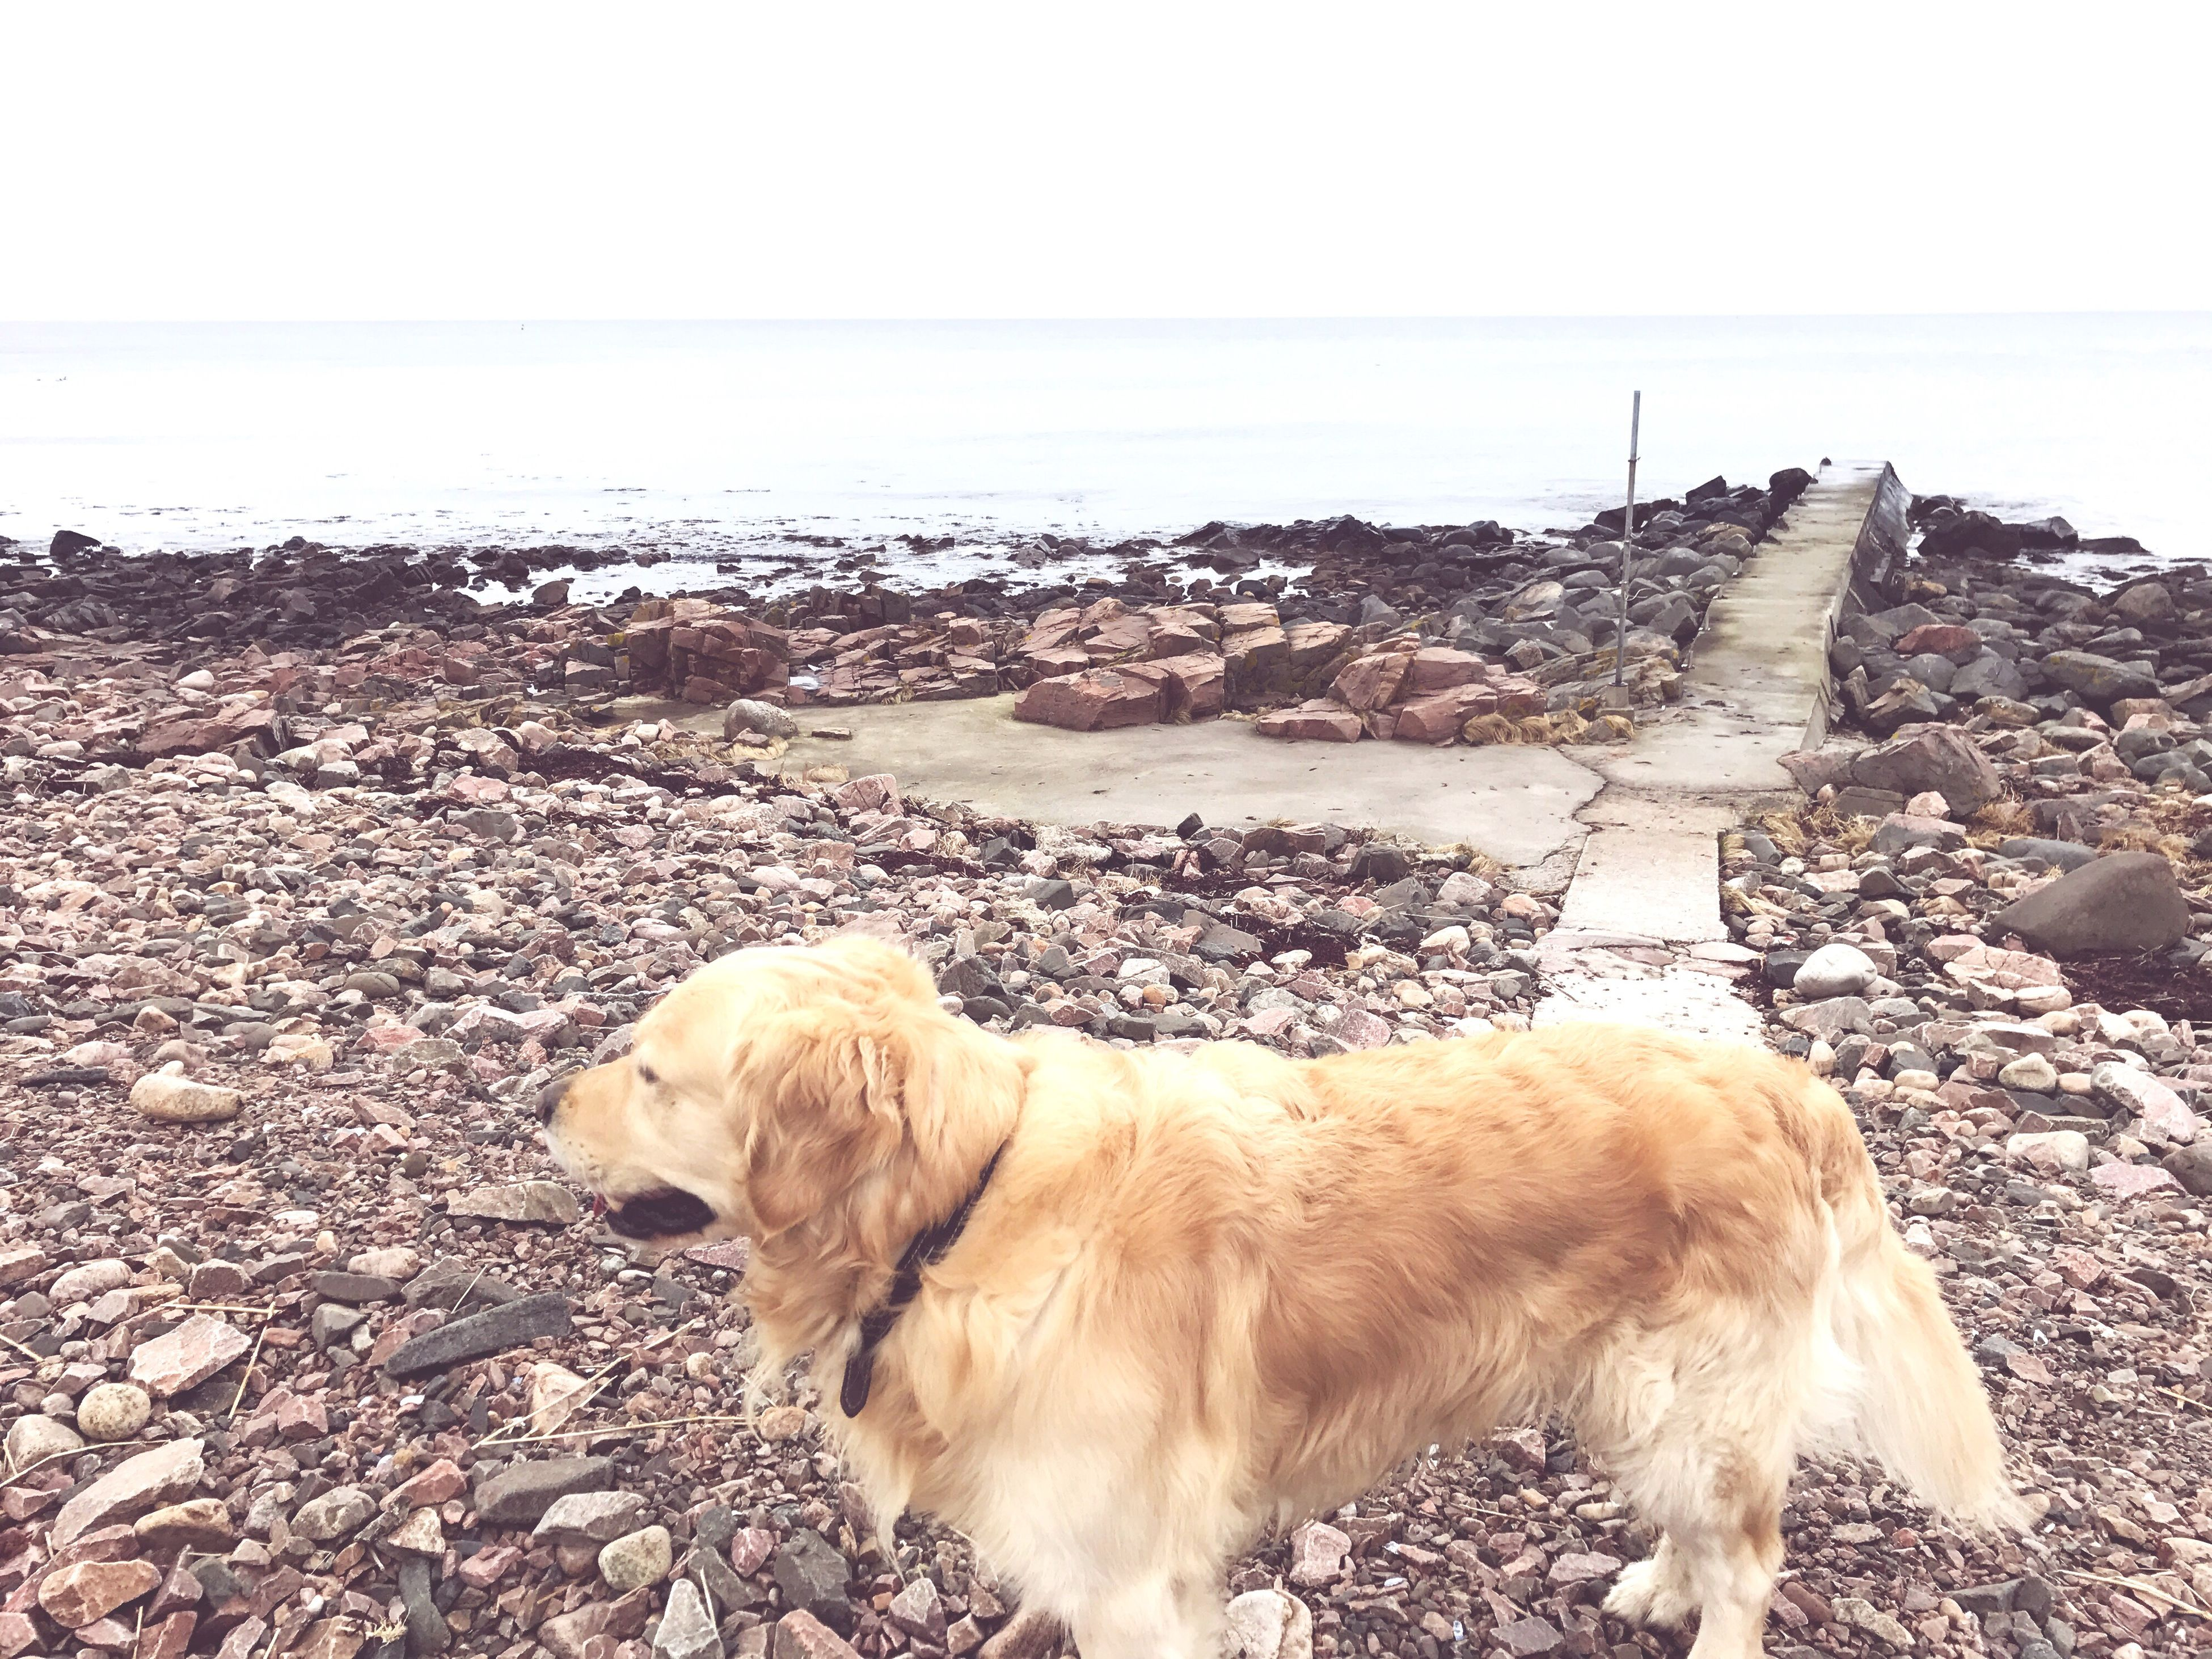 dog, pets, domestic animals, mammal, animal themes, sea, beach, nature, water, horizon over water, outdoors, no people, one animal, golden retriever, sand, day, sky, beauty in nature